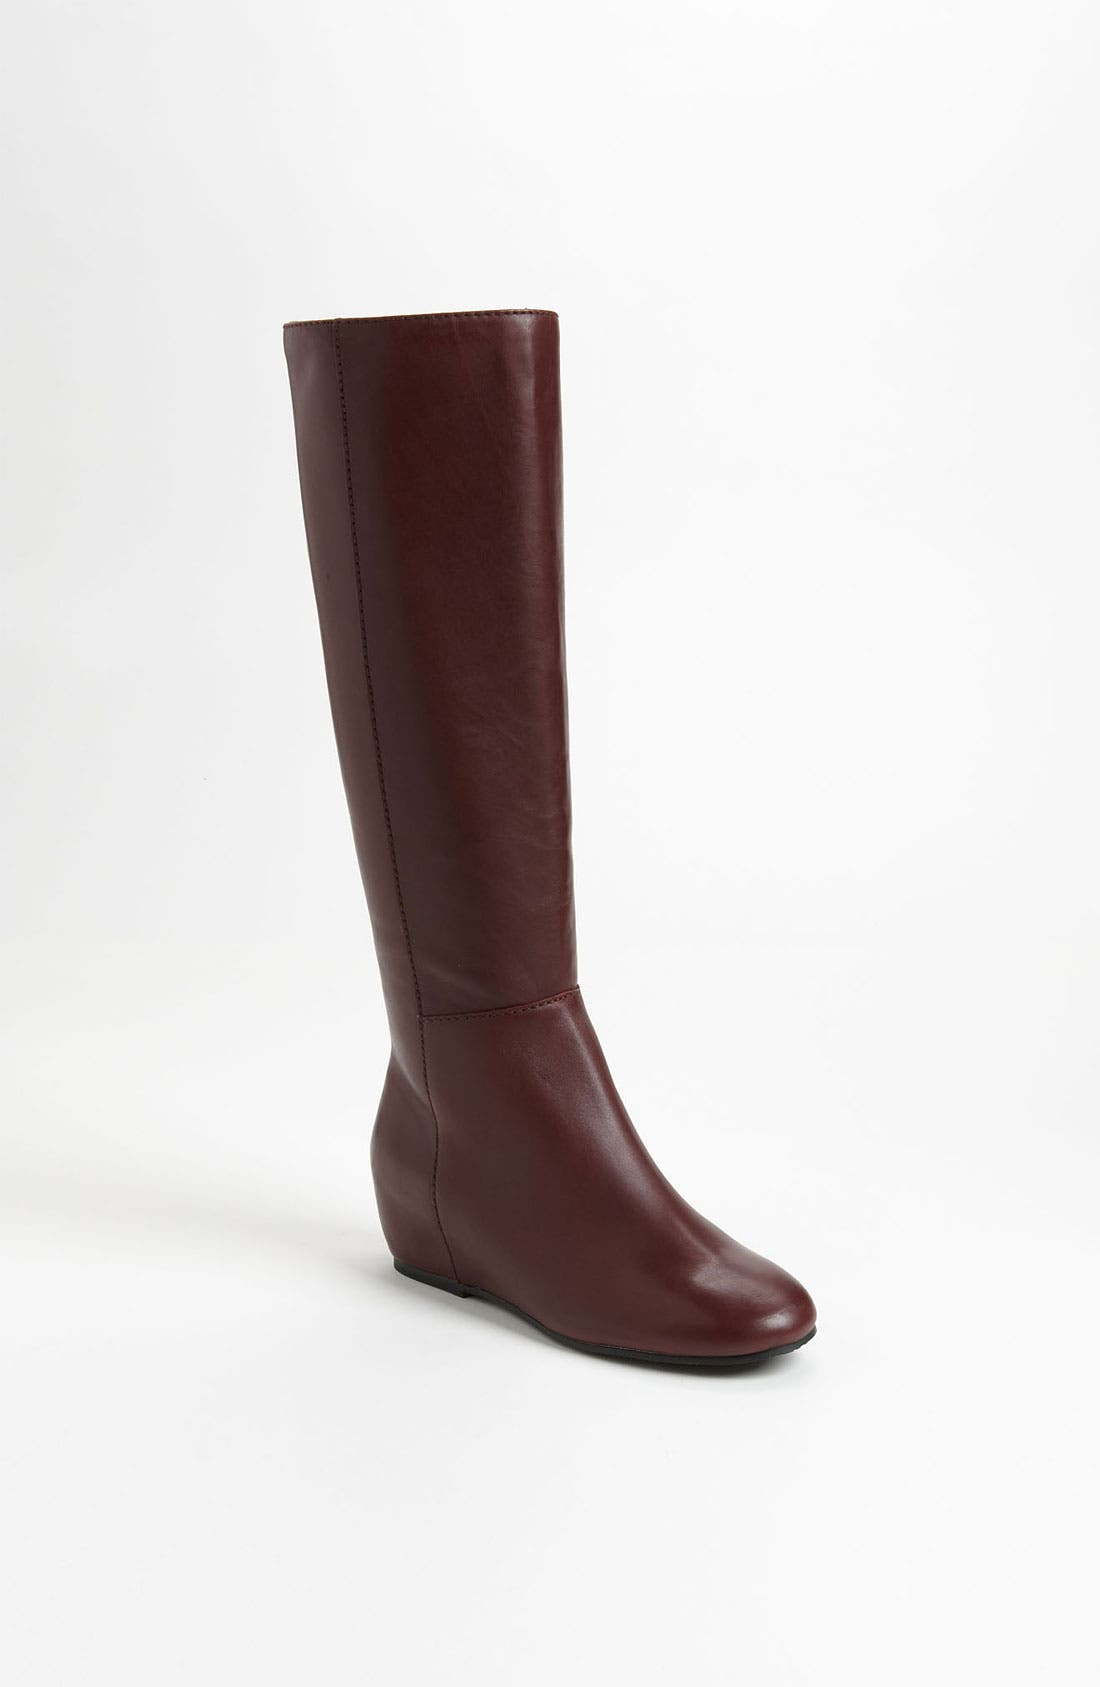 Alternate Image 1 Selected - Boutique 9 'Zanny' Boot